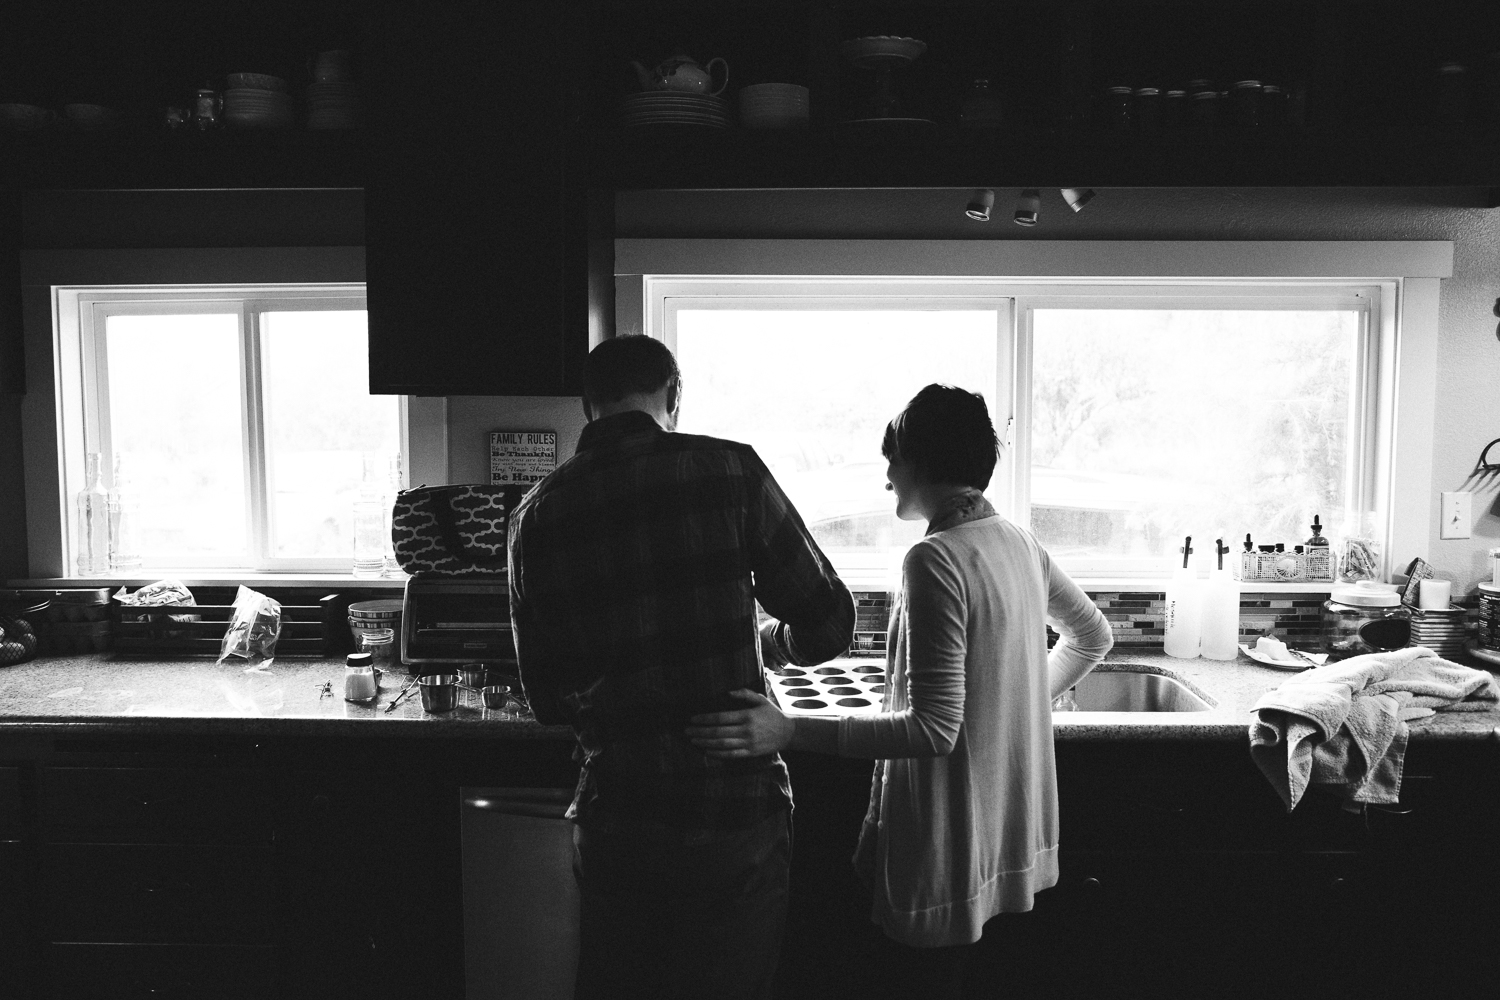 husband and wife cooking together